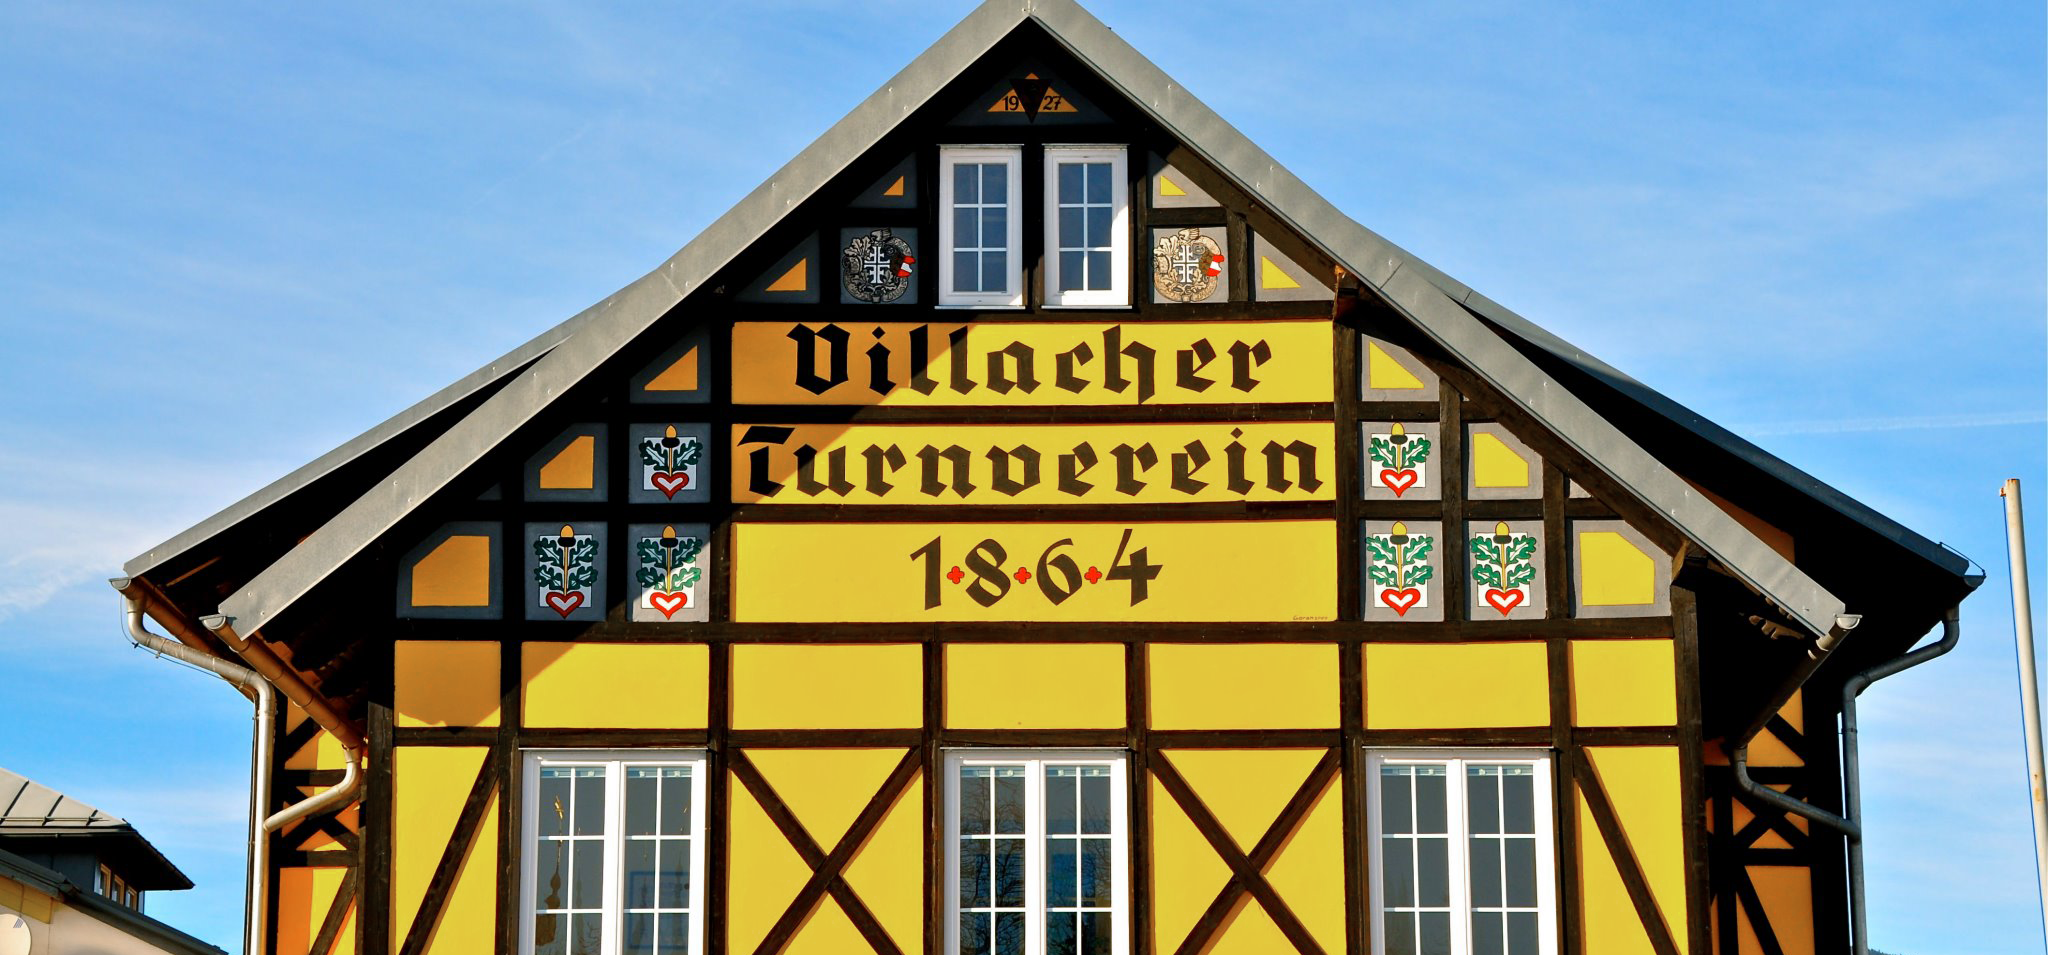 http://www.turnverein-villach.at/wp-content/uploads/2017/01/Header_Turnverein.png